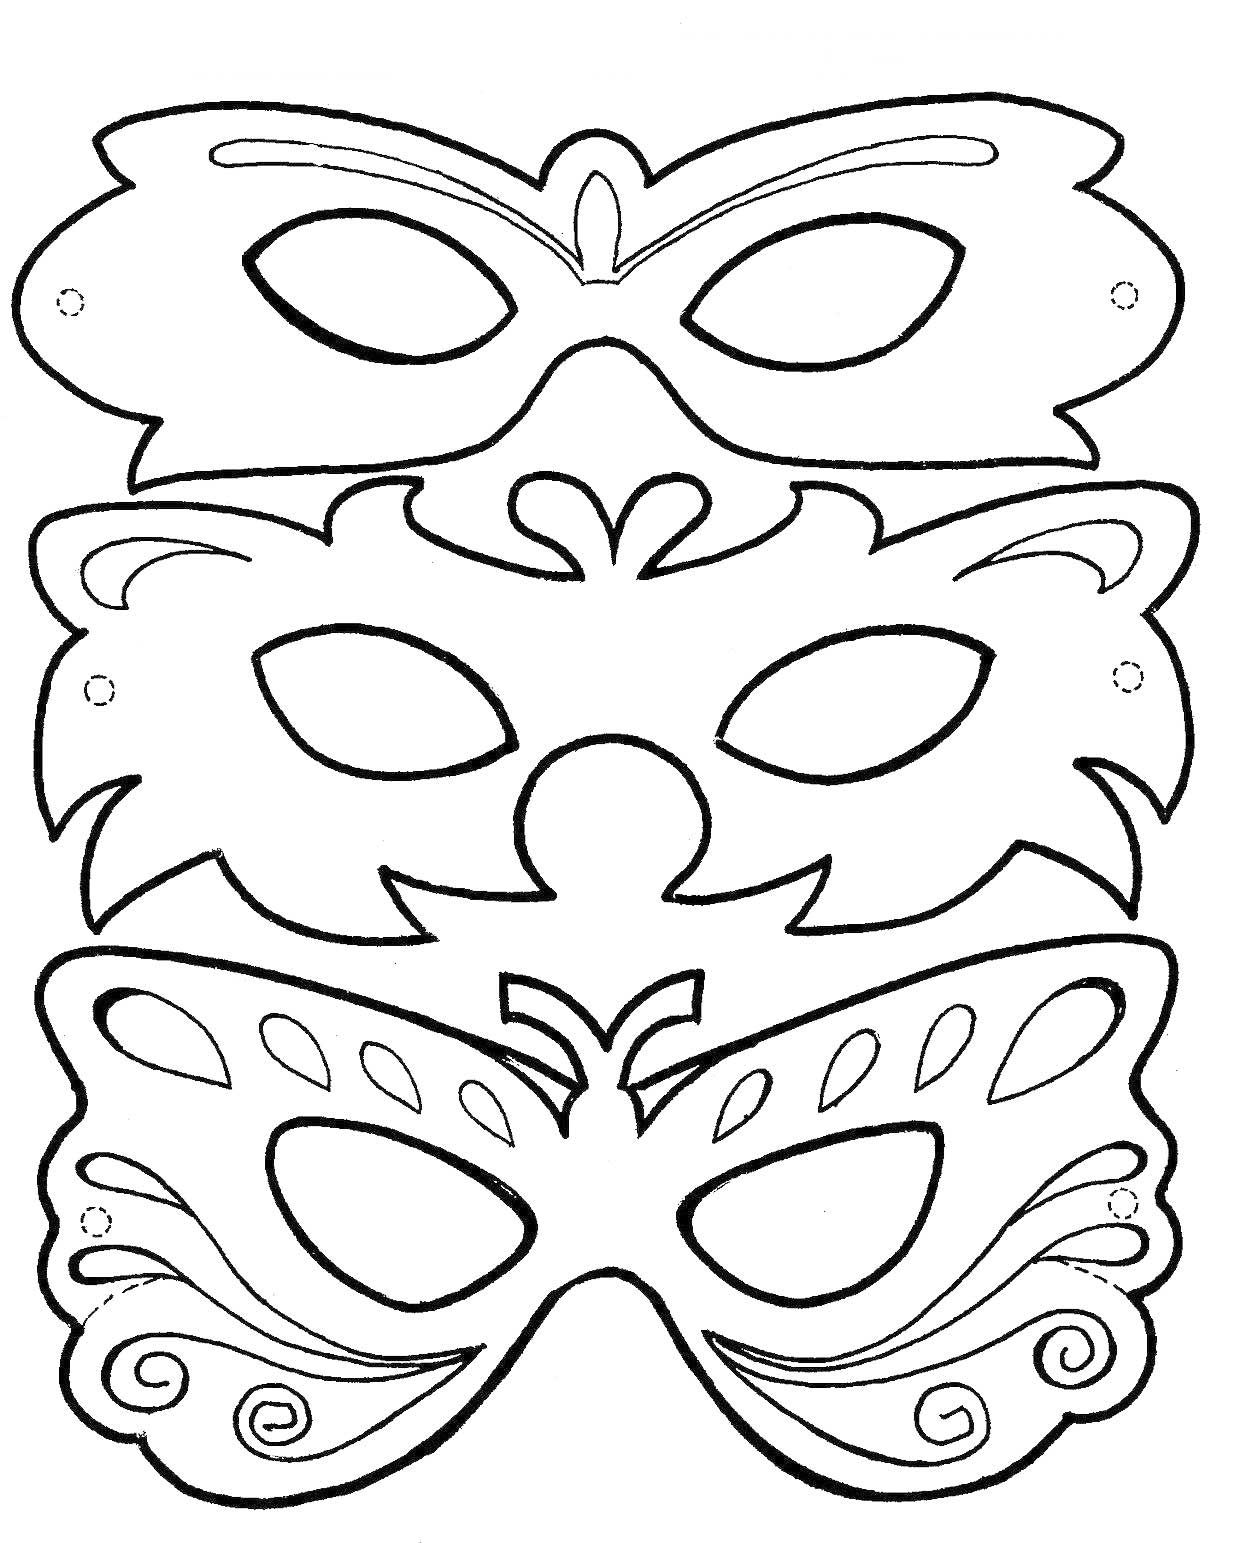 Mascaras De Carnaval Decor Pinterest Mask Template Carnival